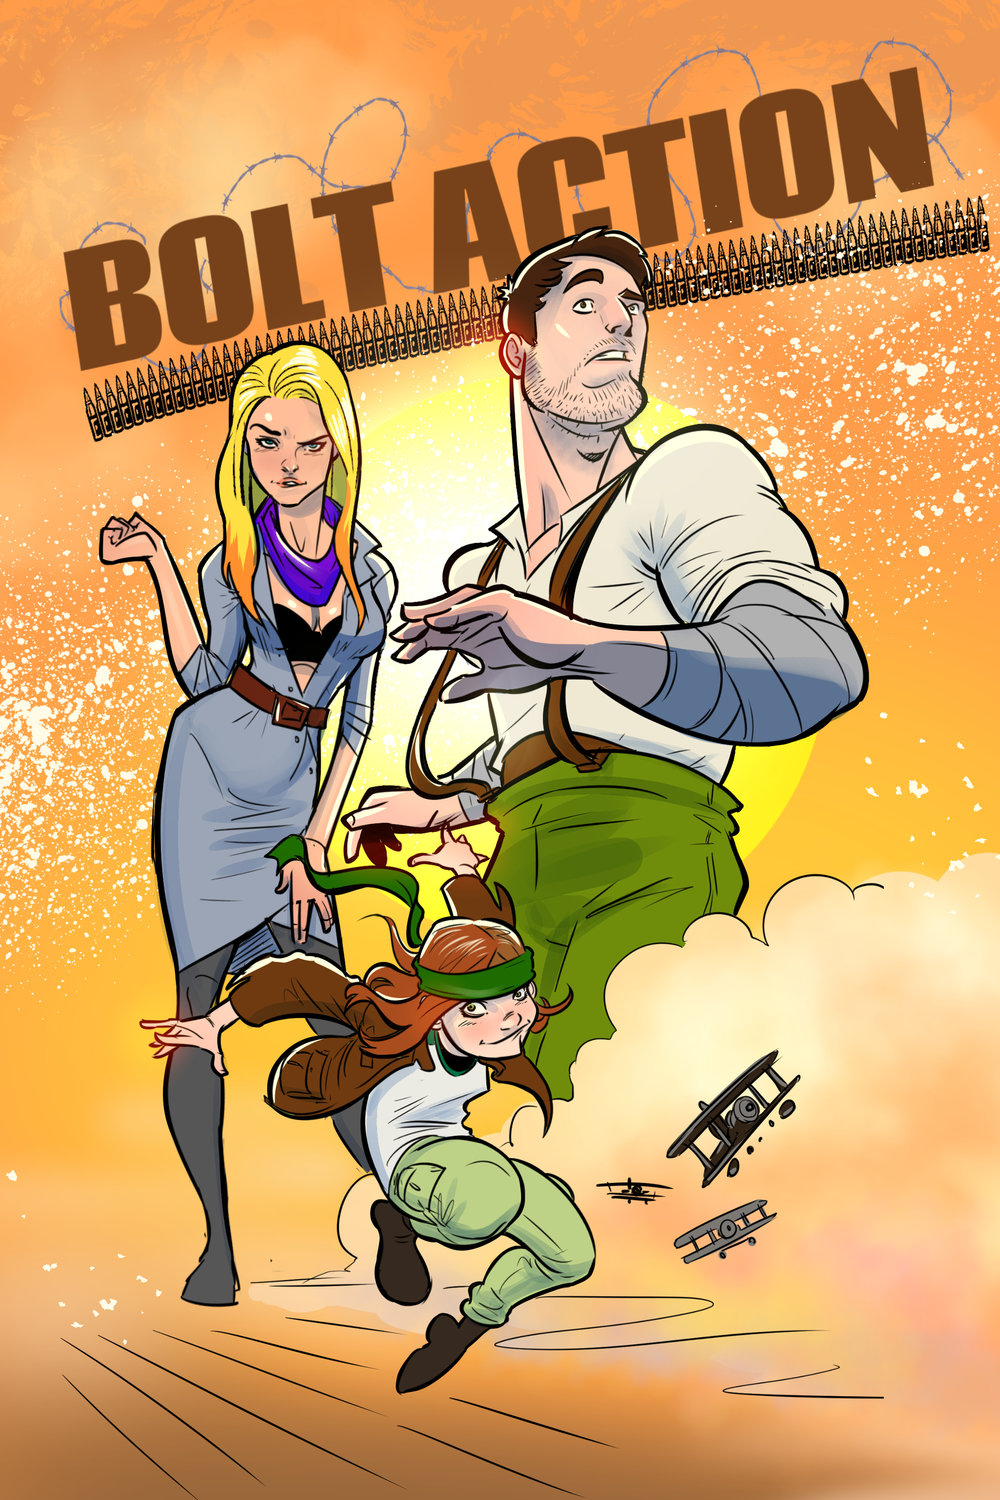 """BOLT ACTION!""   The Matsuya Brother's high flying action/adventure webcomic. The first issue is available on Tapastic.com."